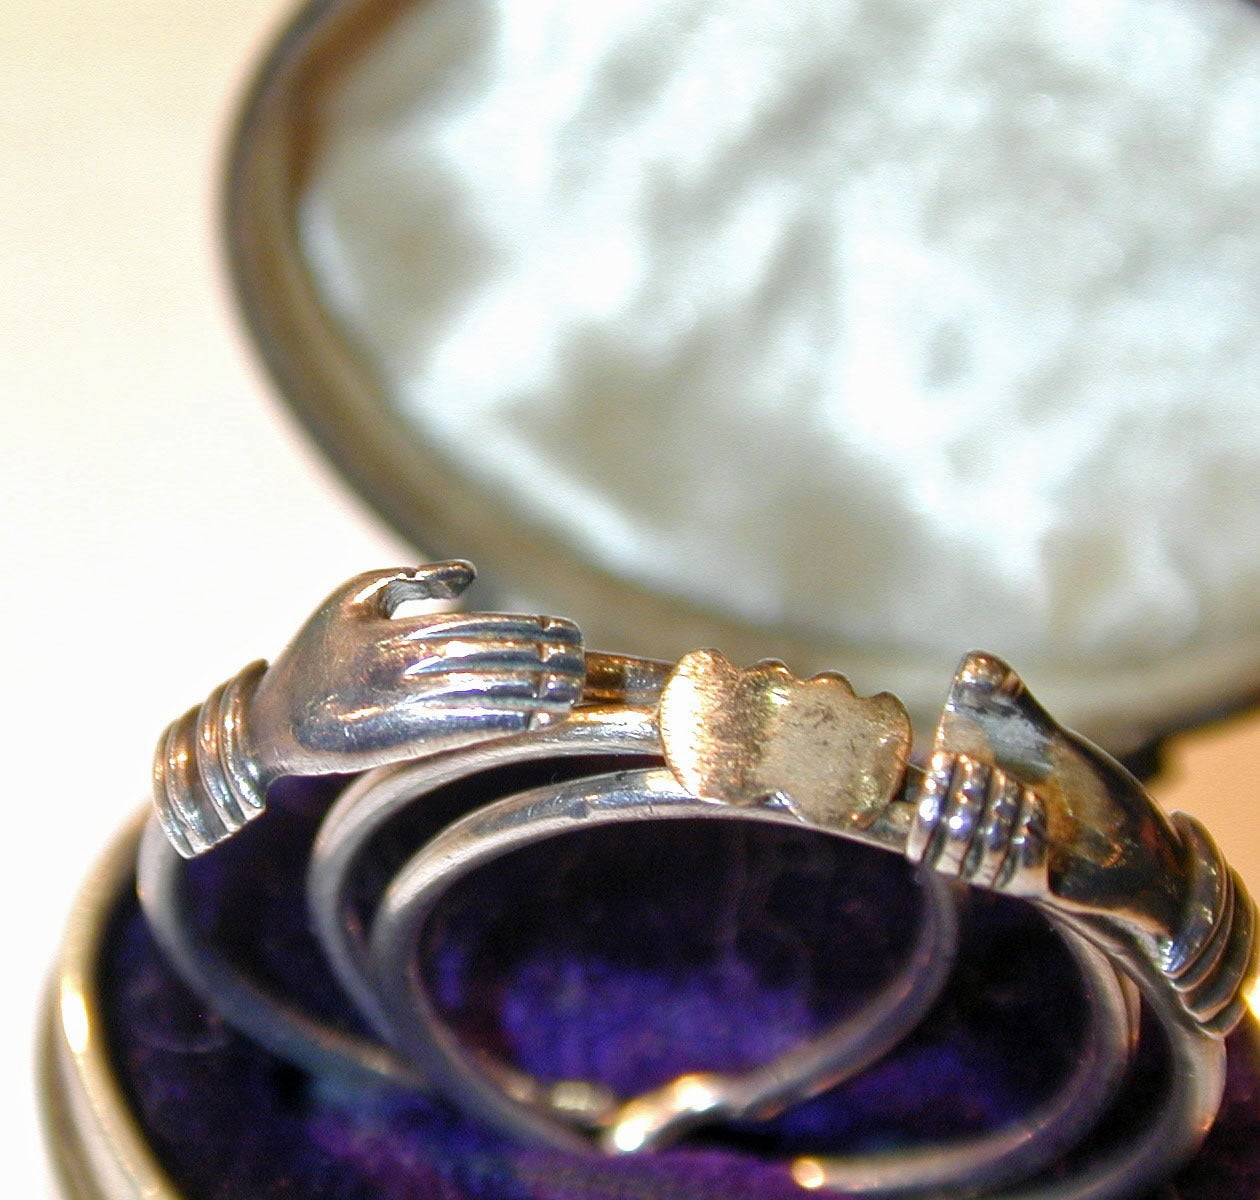 Antique Sterling Betrothal Ring with Clasped Hands over a heart 4